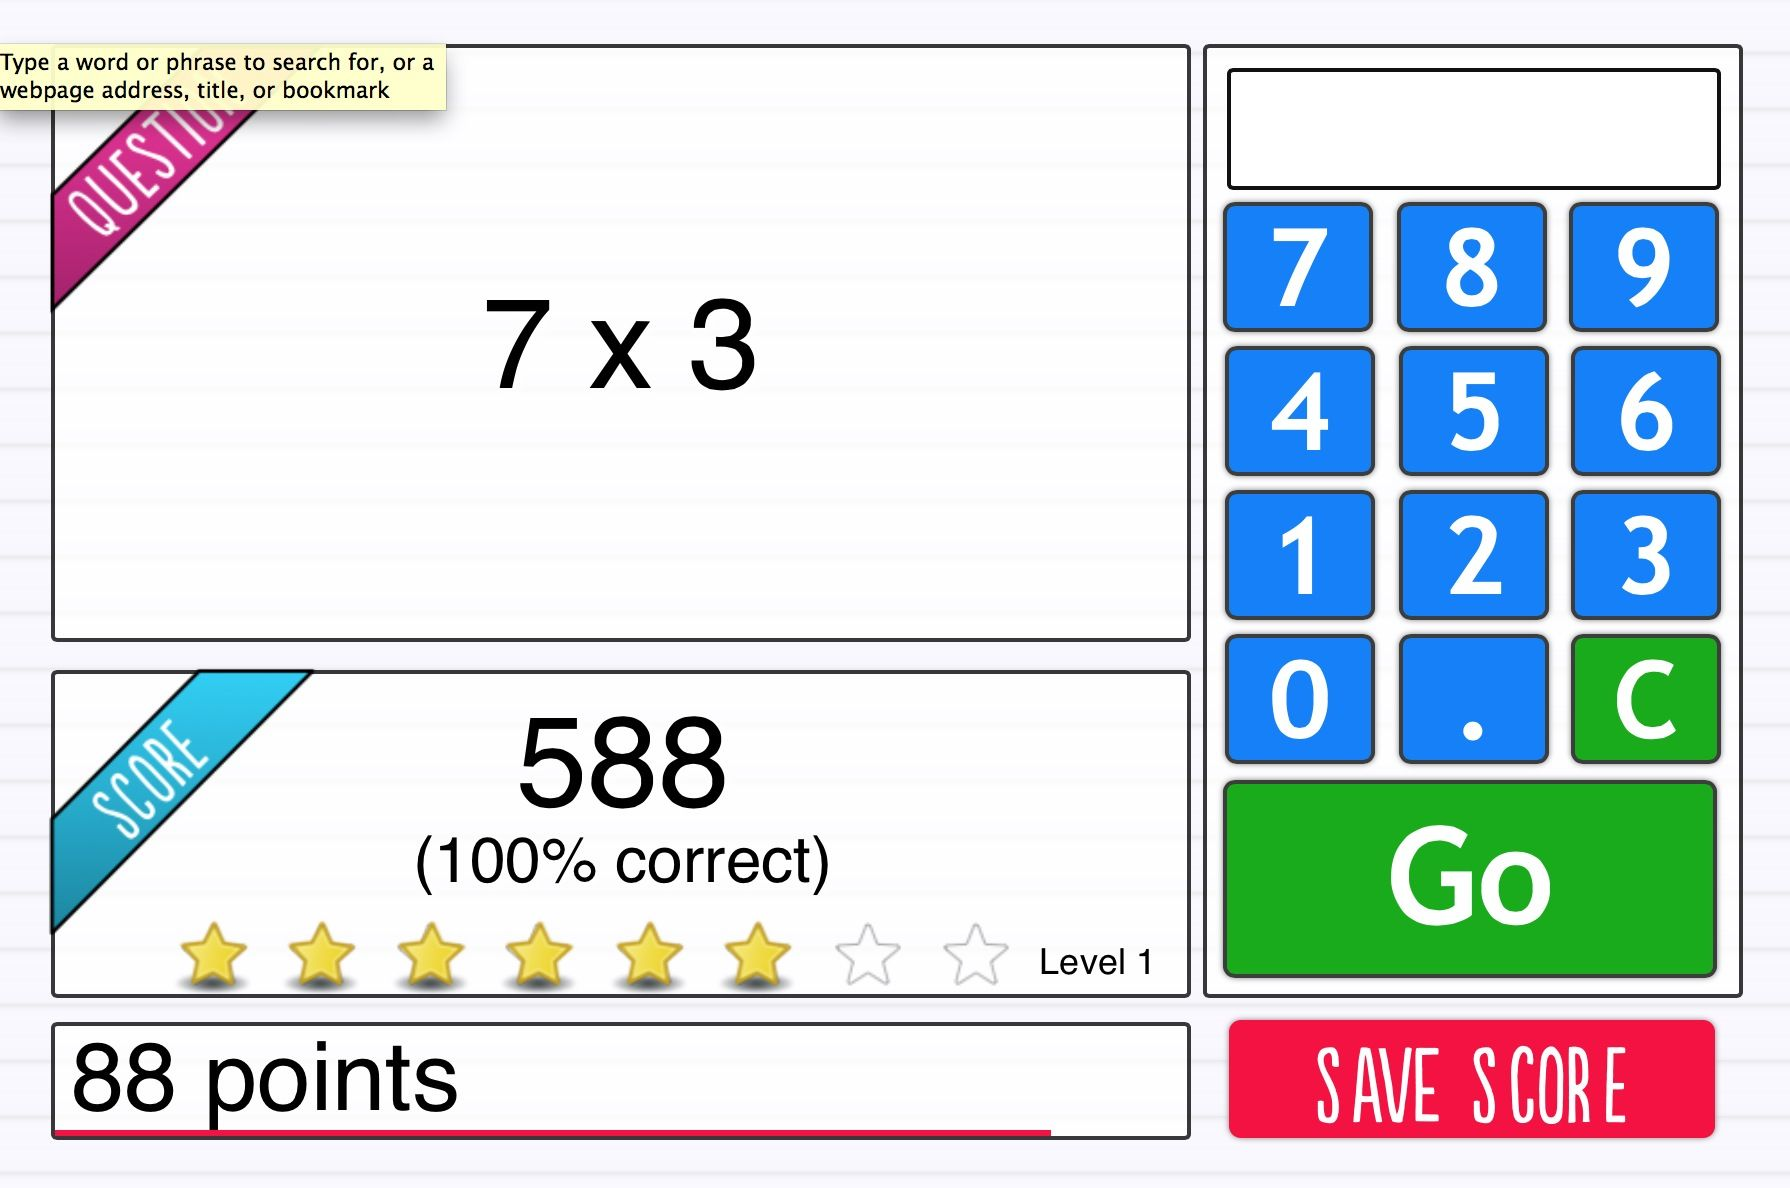 I Can Recall The 3 Times Table Up To 3 X 10